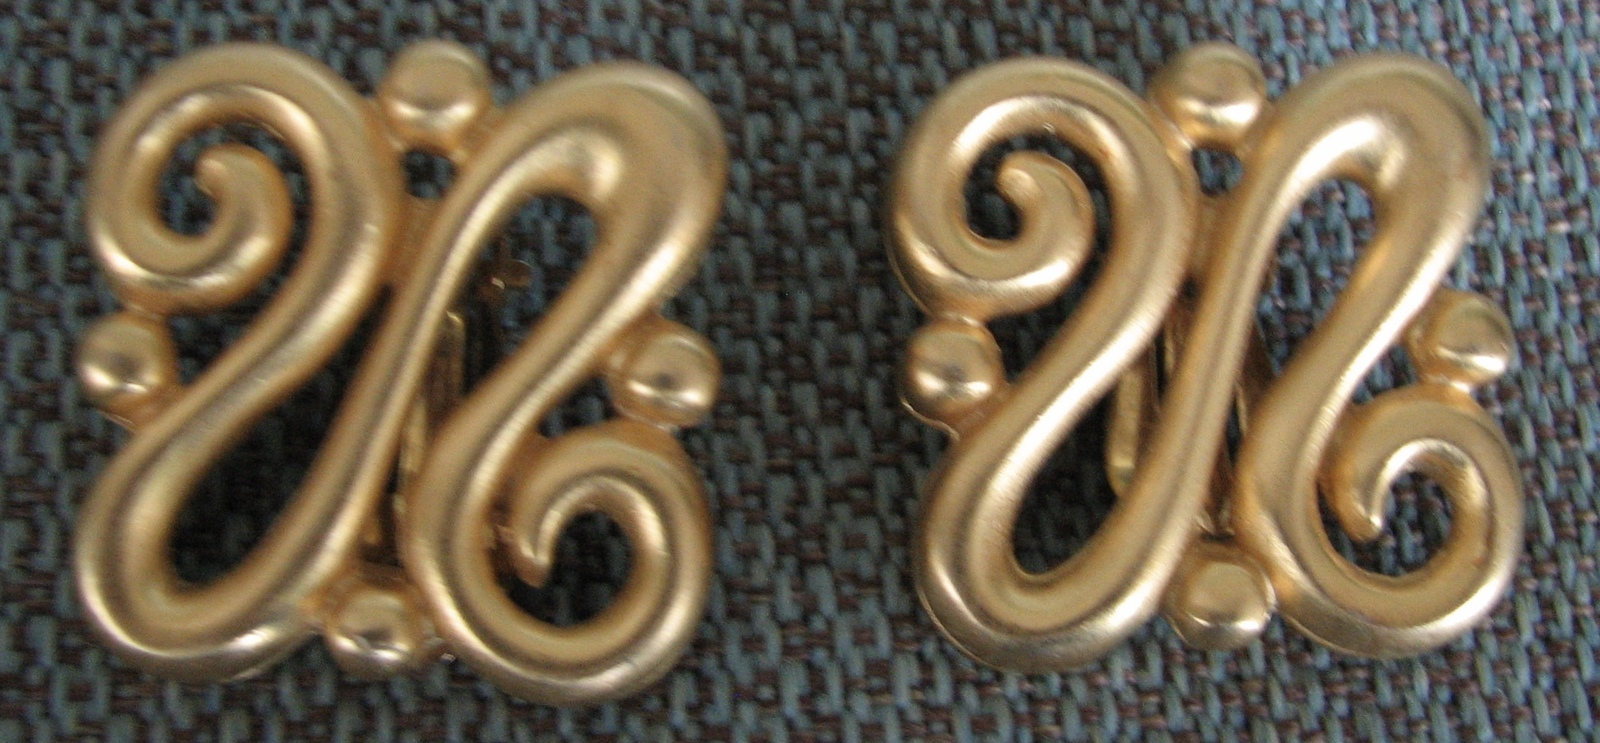 Vintage Givenchy Modernist Earrings Gold Plated Signed 1980s